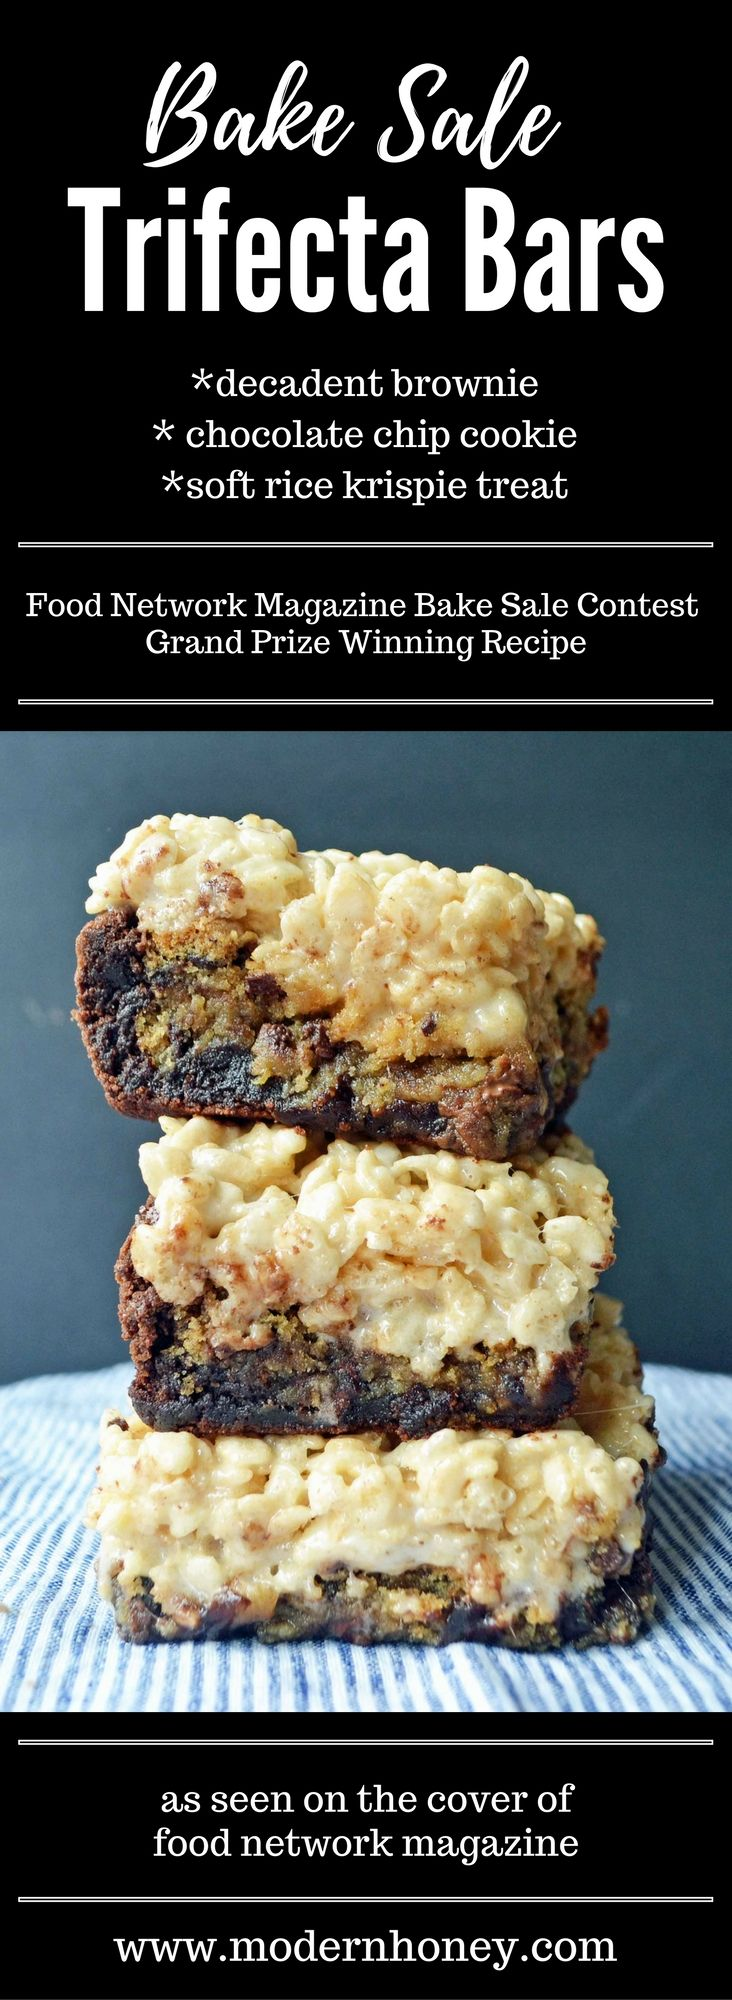 Bake Sale Trifecta Bars made with decadent brownie, ultimate chocolate chip cookie, and a soft marshmallow rice krispie treat. It's the crowd pleasing dessert bar that won the grand prize in the Food Network Magazine Bake Sale Contest.